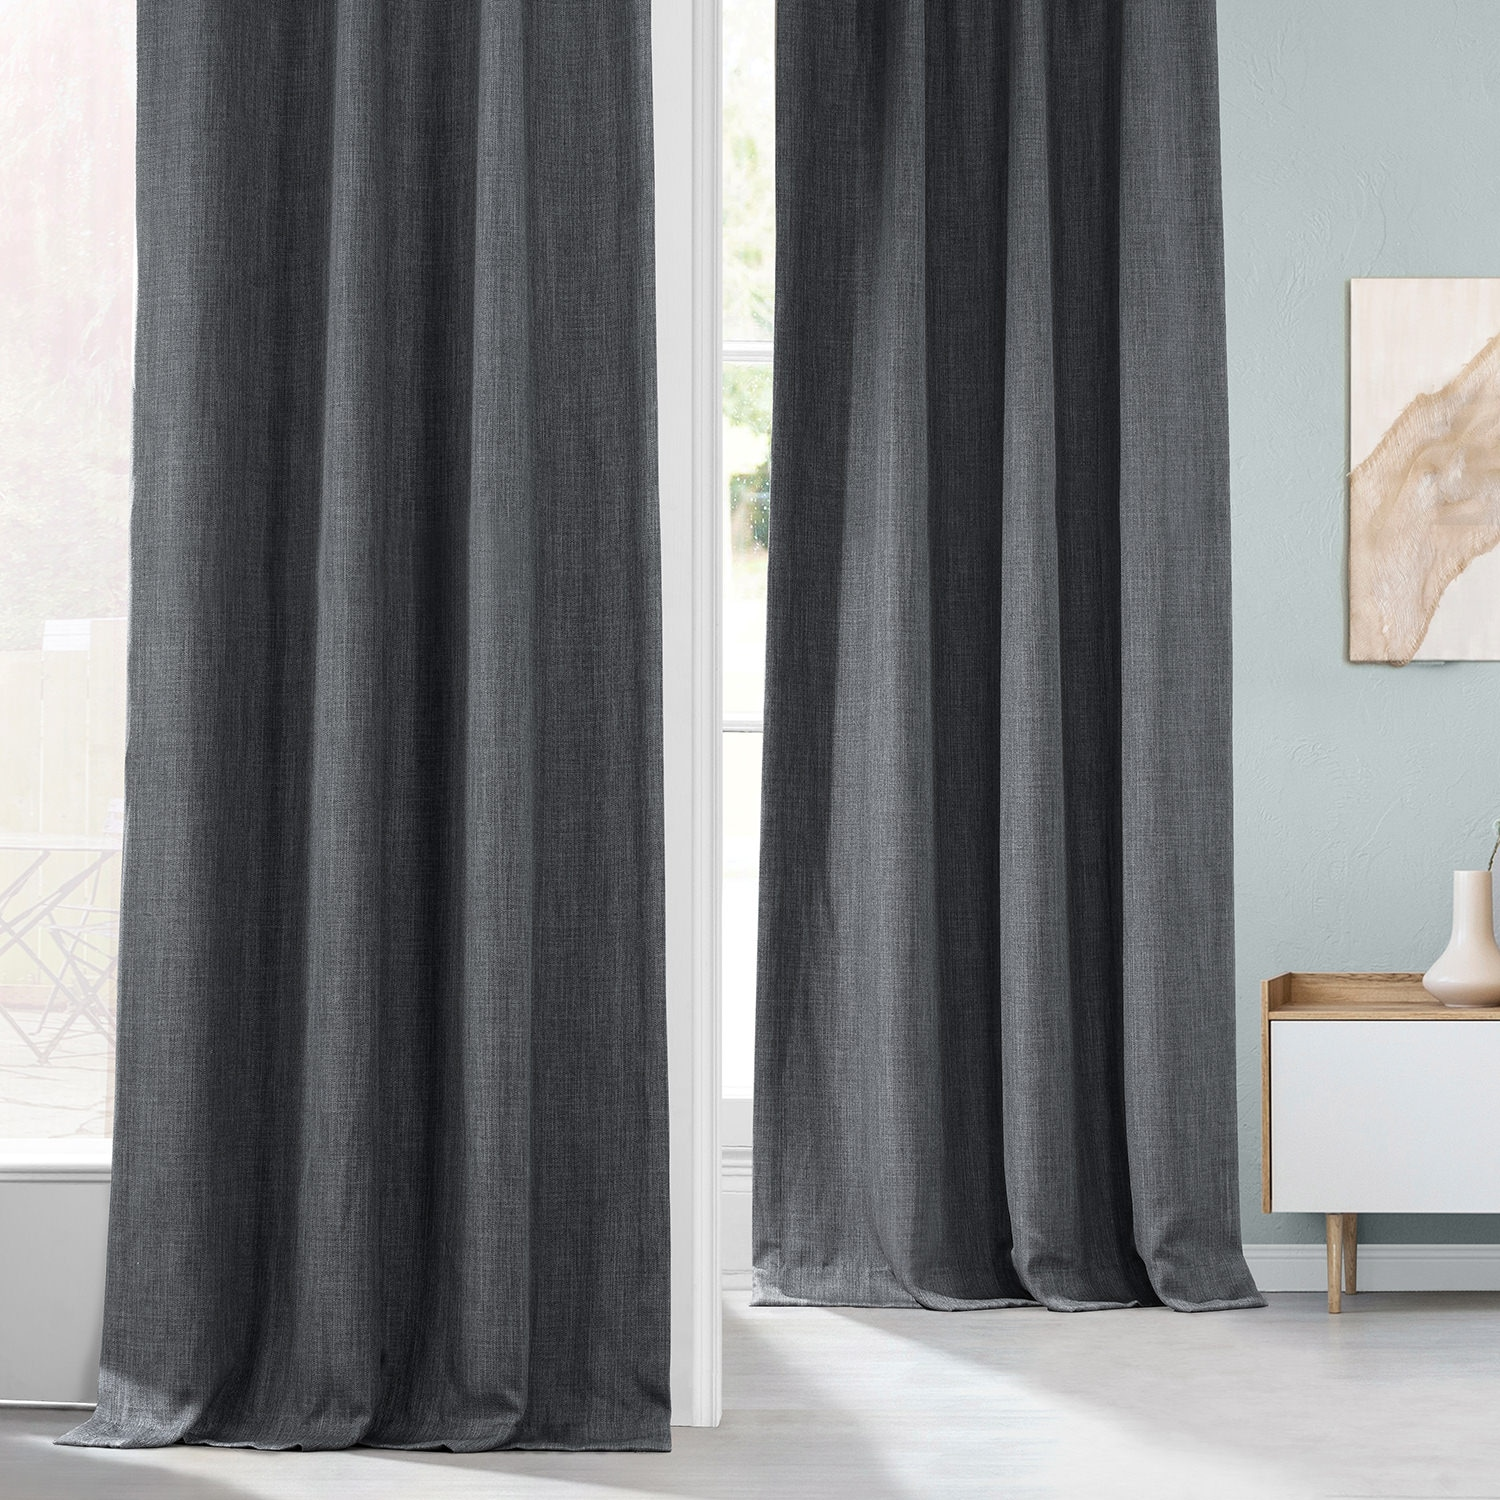 Dark Gravel Faux Linen Blackout Room Darkening Curtain